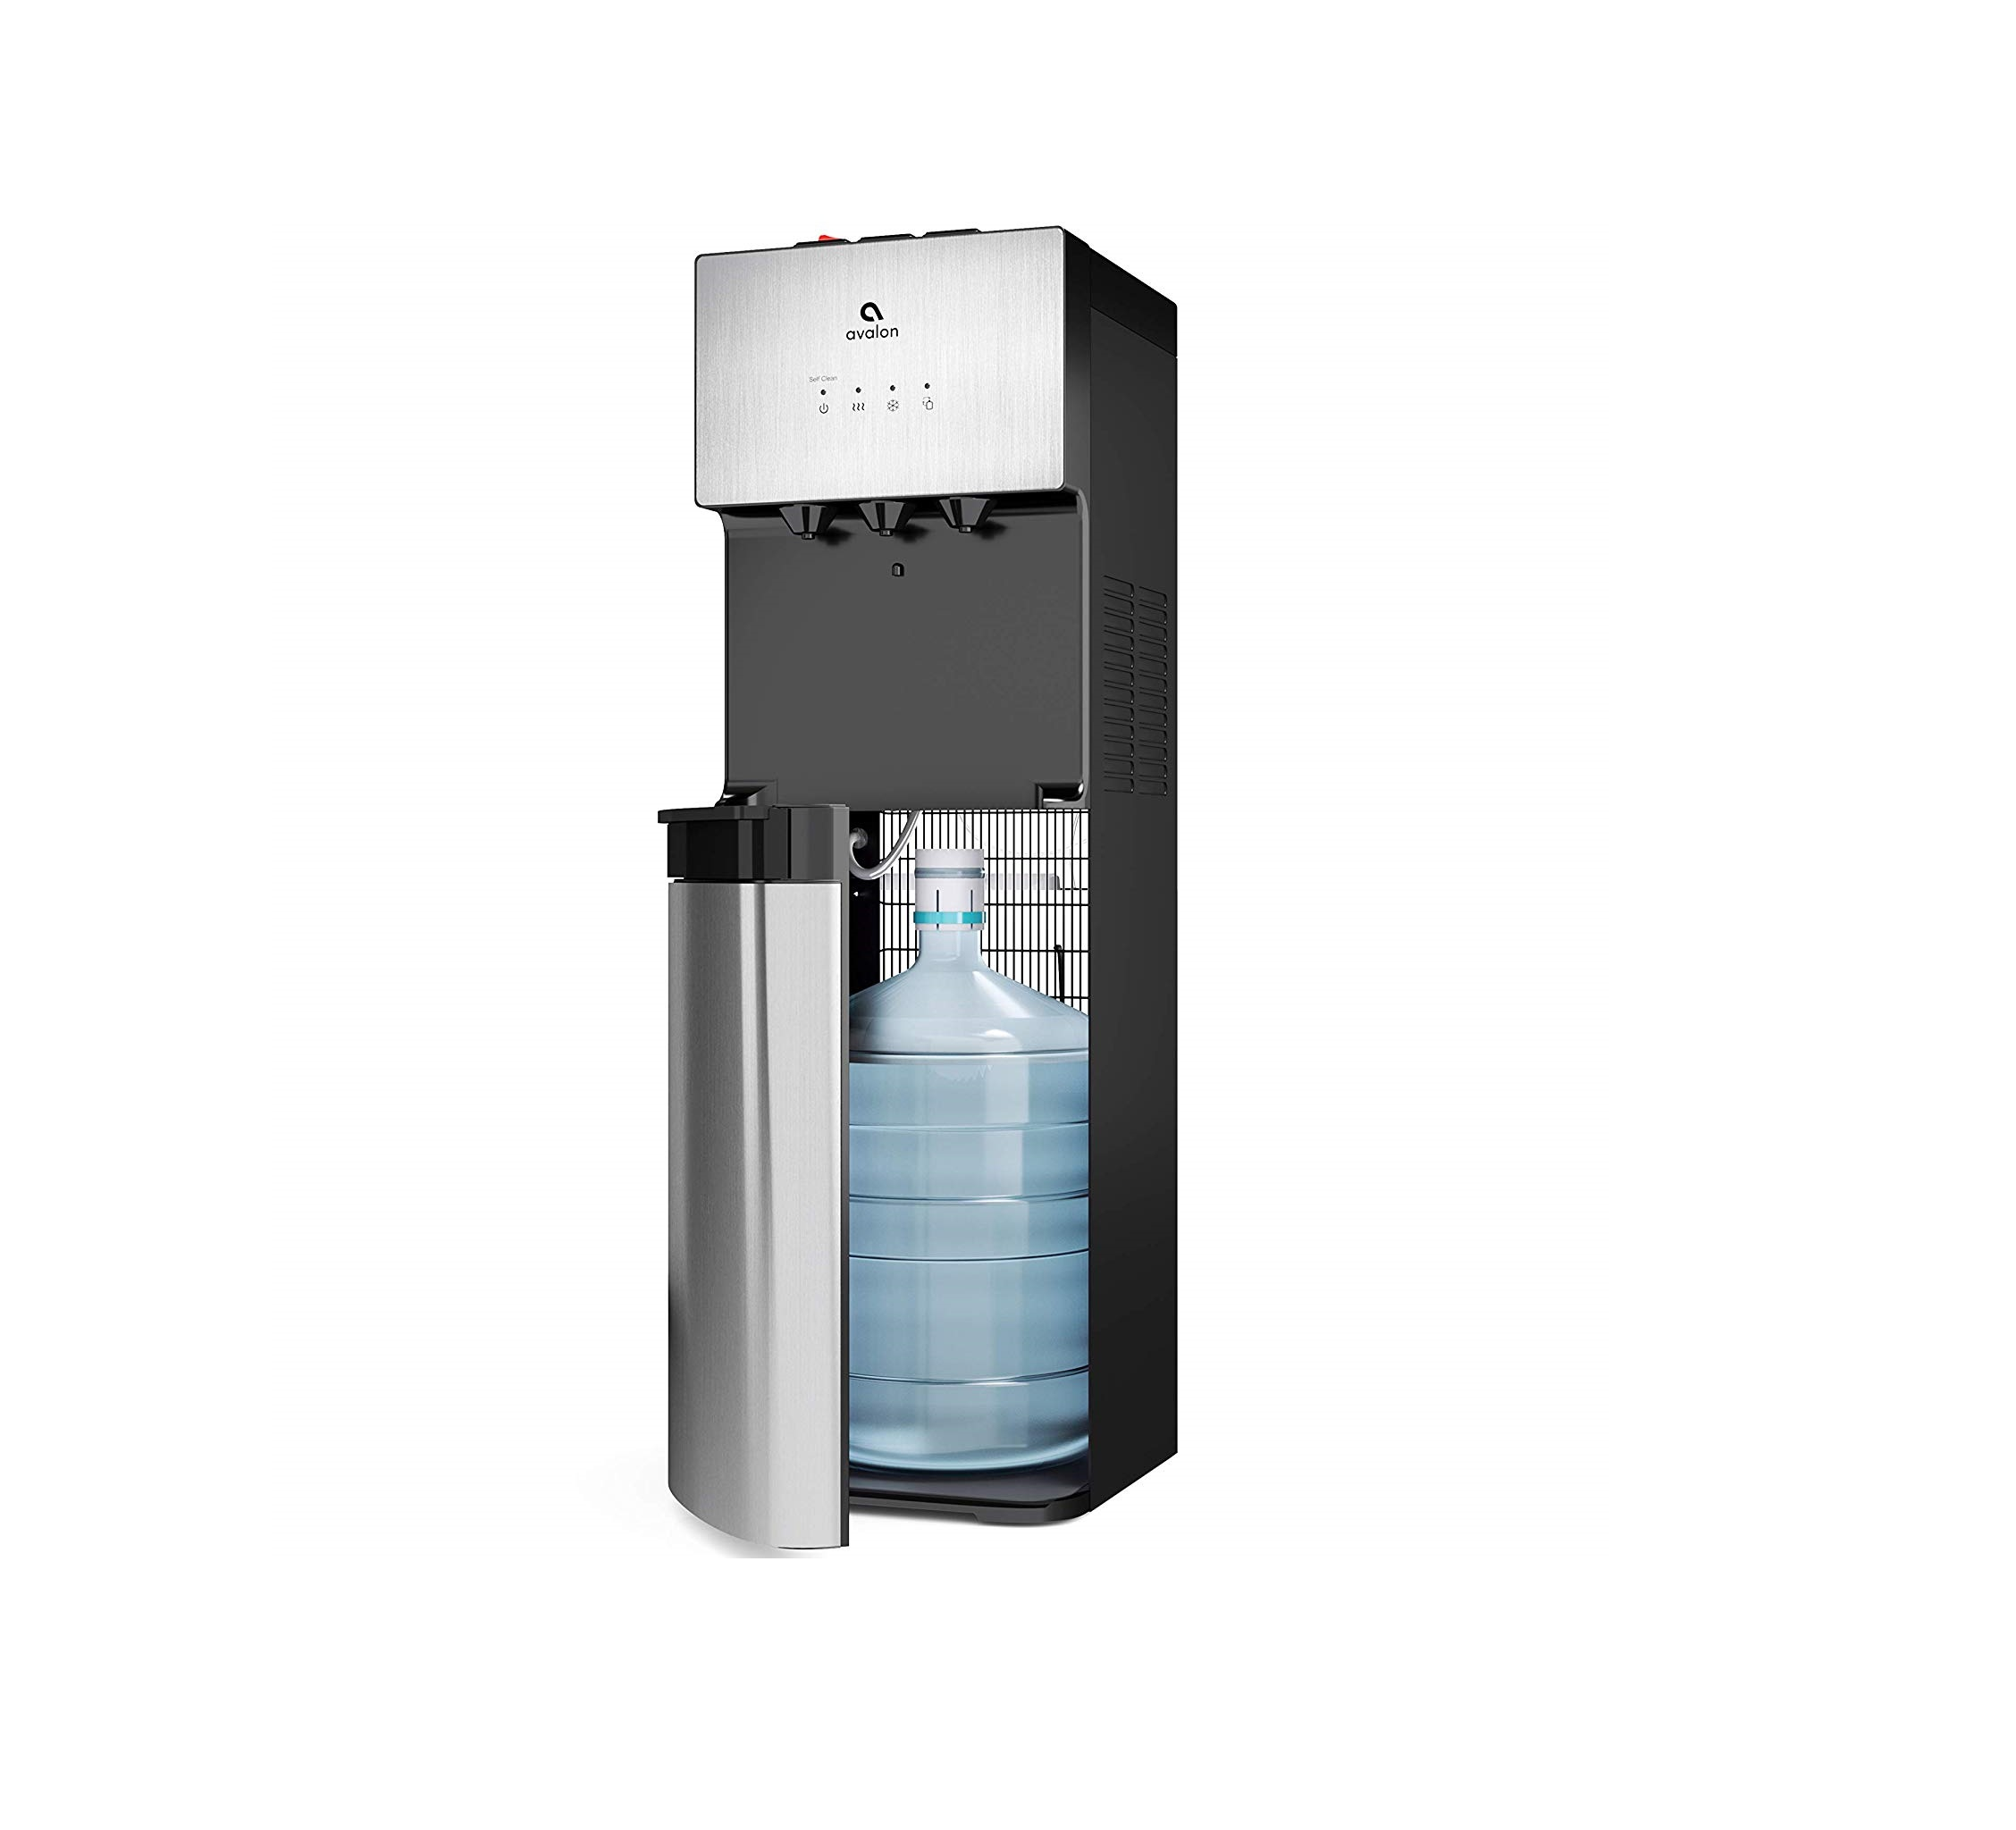 Top 5 Best Bottom Loading Water Coolers in 2020 Reviews